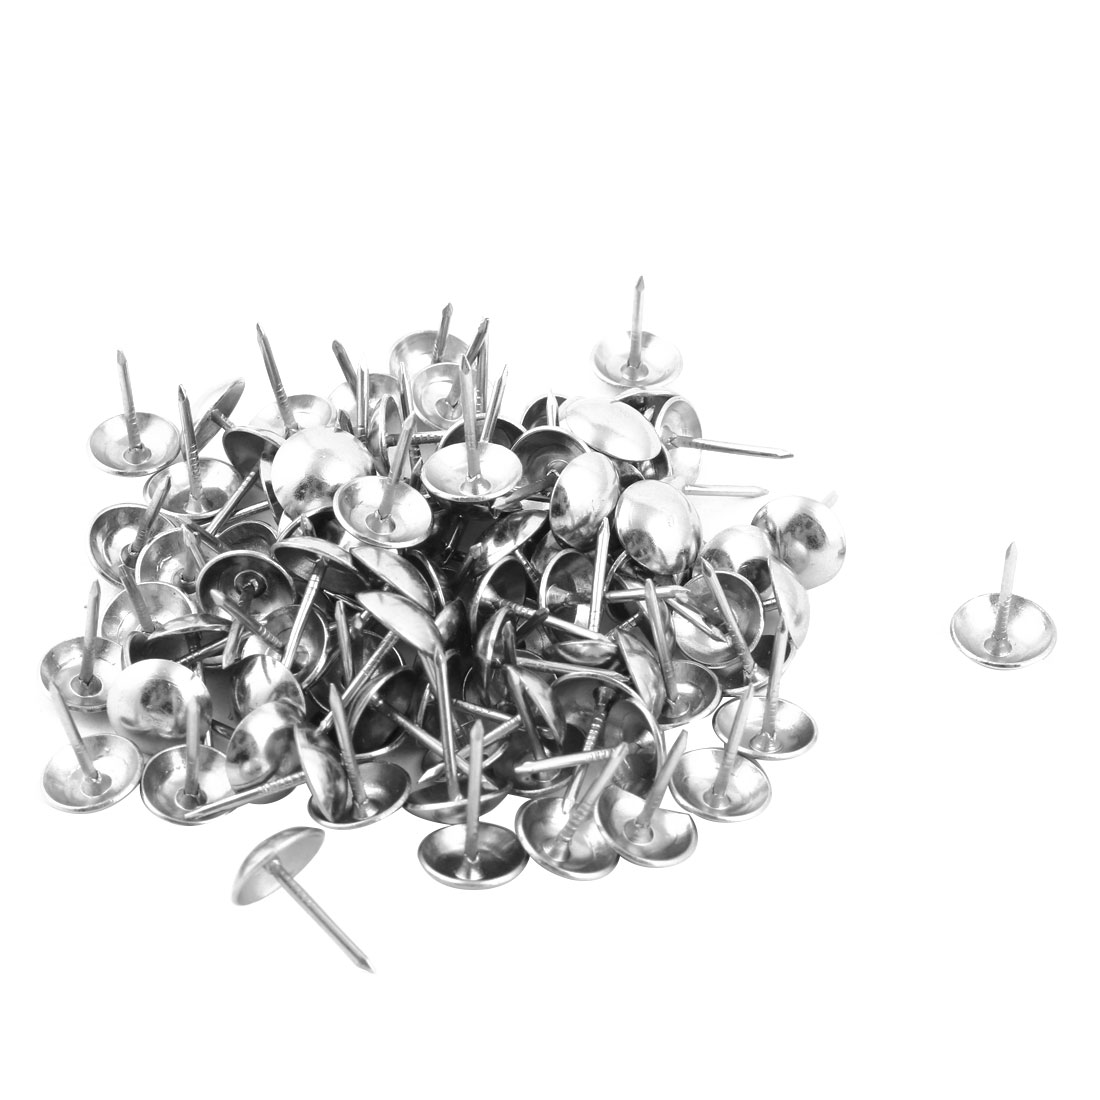 Office Metal Upholstery Tack Nail Wall Pushpin Silver Tone 10 x 15mm 100pcs